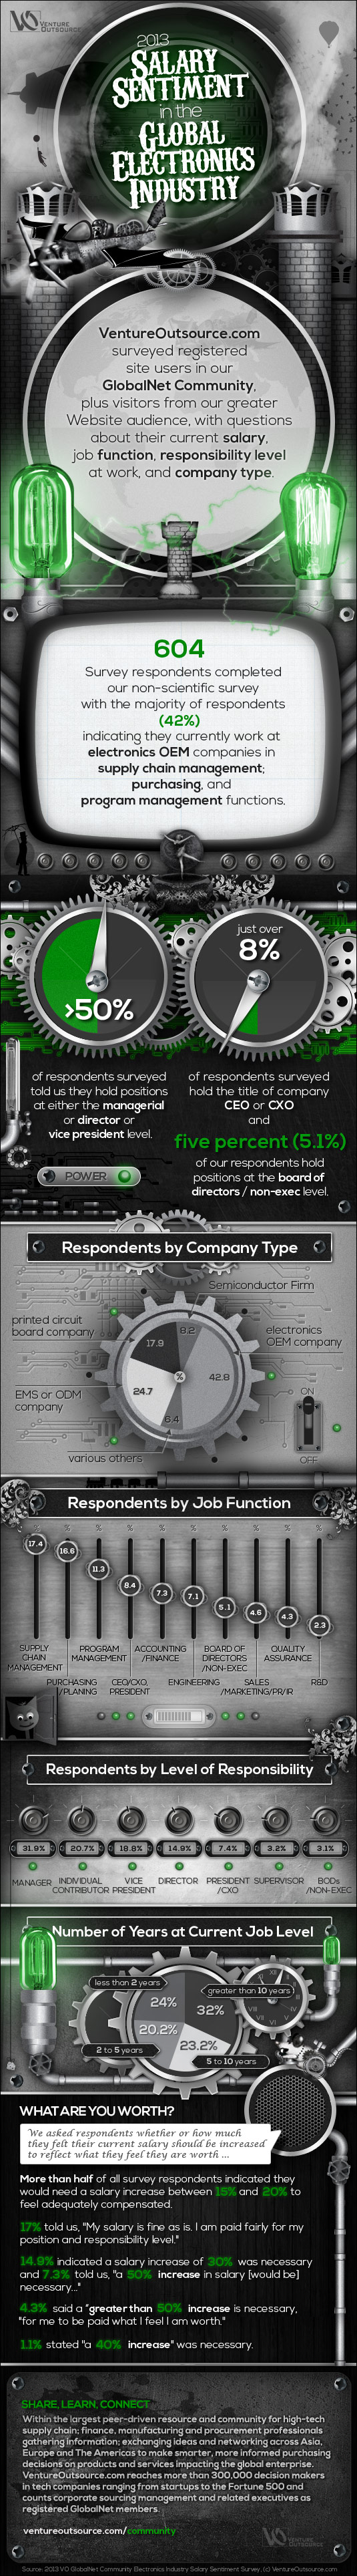 Electronics Industry Salary Sentiment Survey Infographic